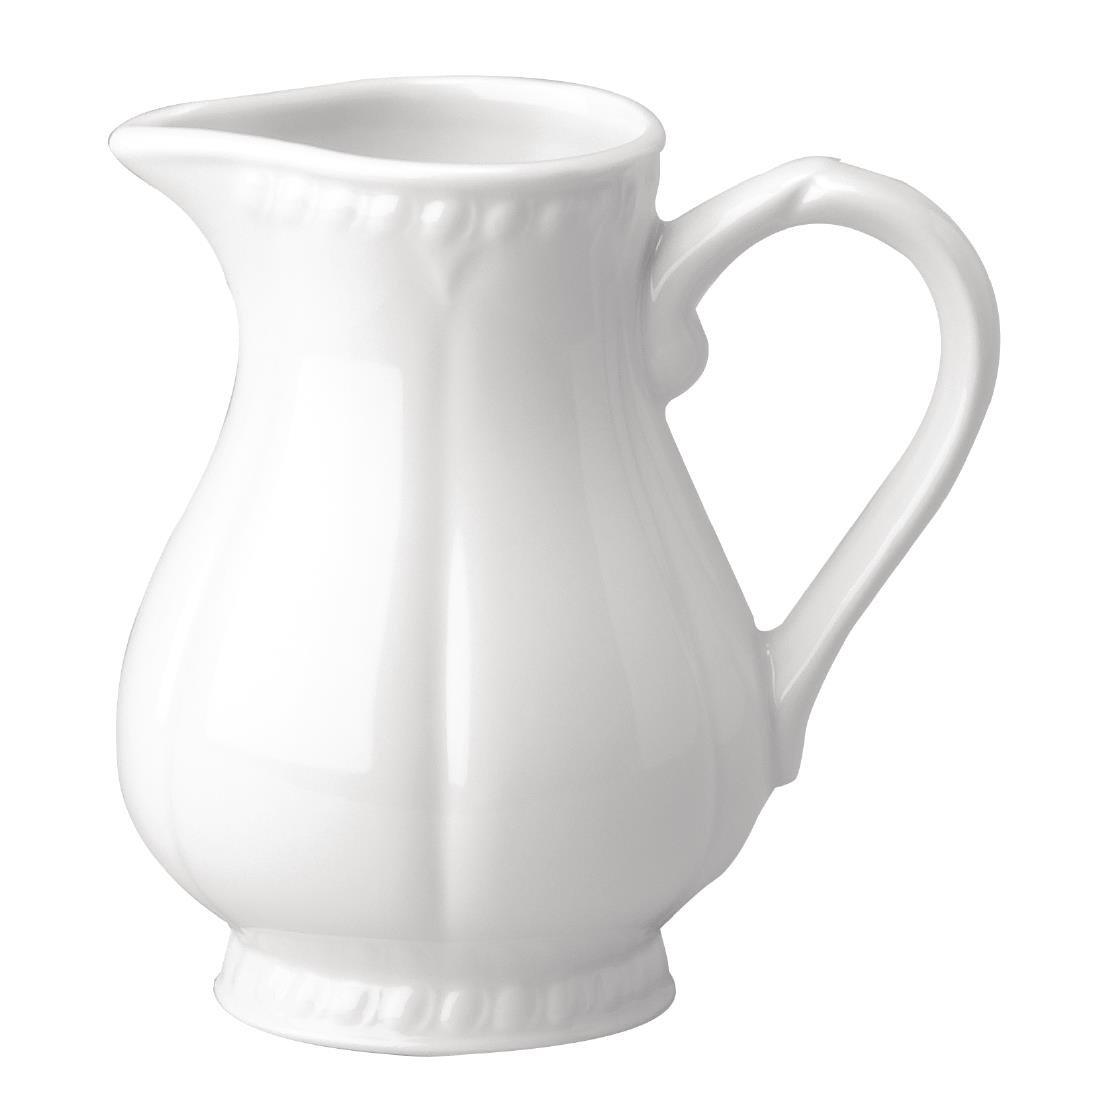 CA238 - Buckingham White Jug